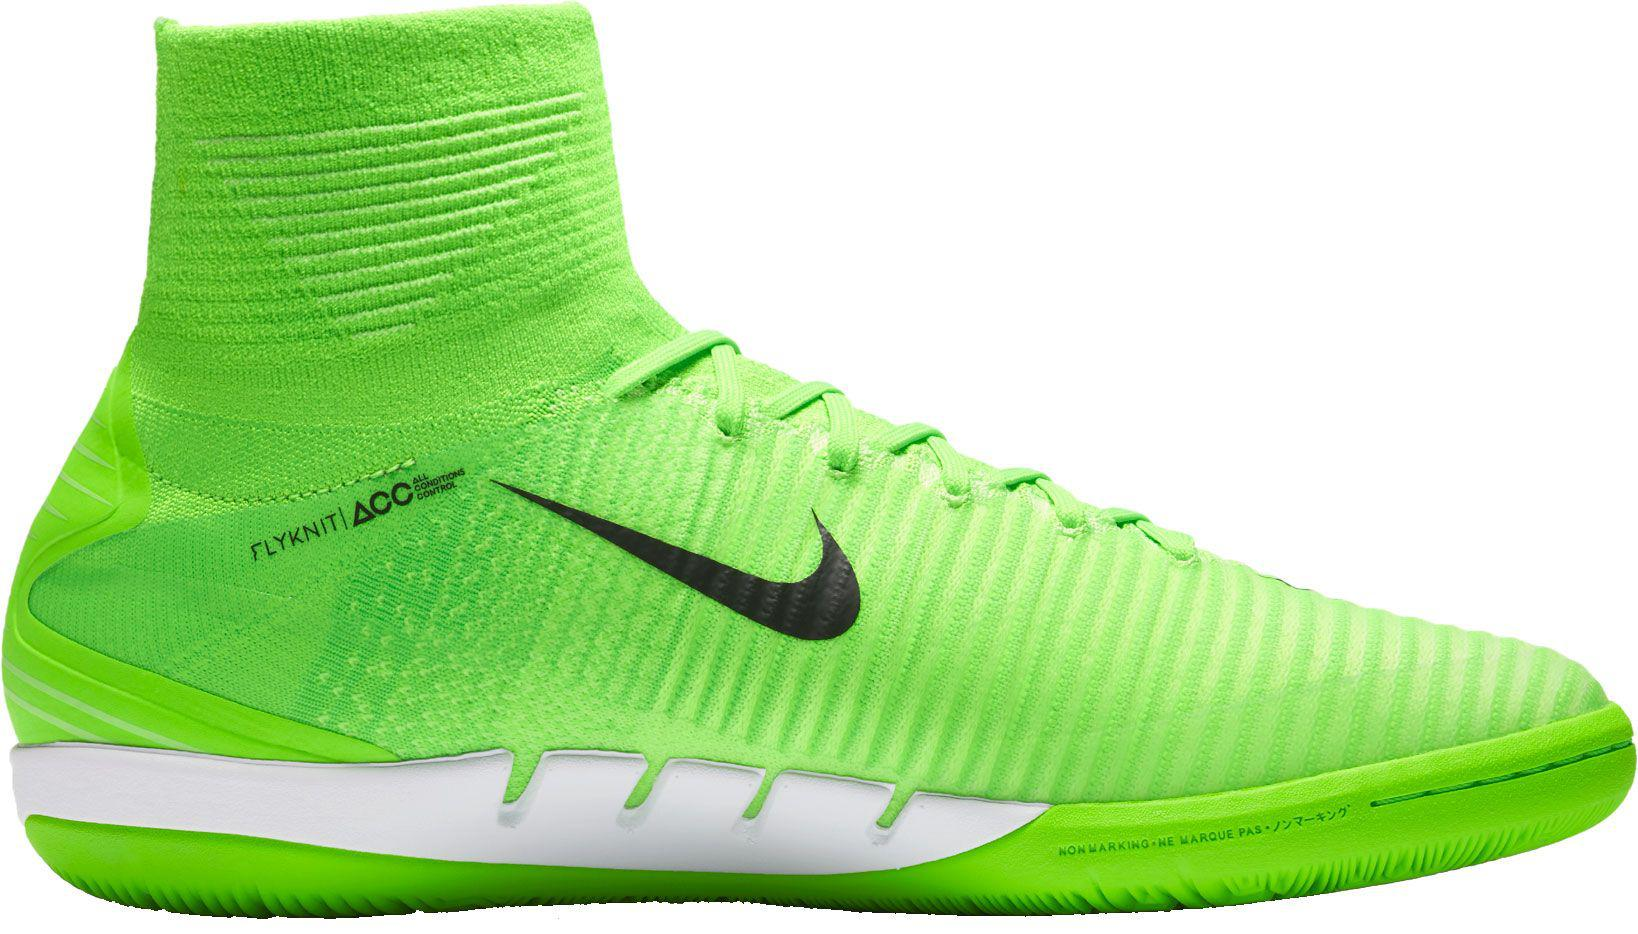 1ee1bfb3f Nike Mercurial X Proximo Ii Indoor Soccer Shoes in Green for Men - Lyst